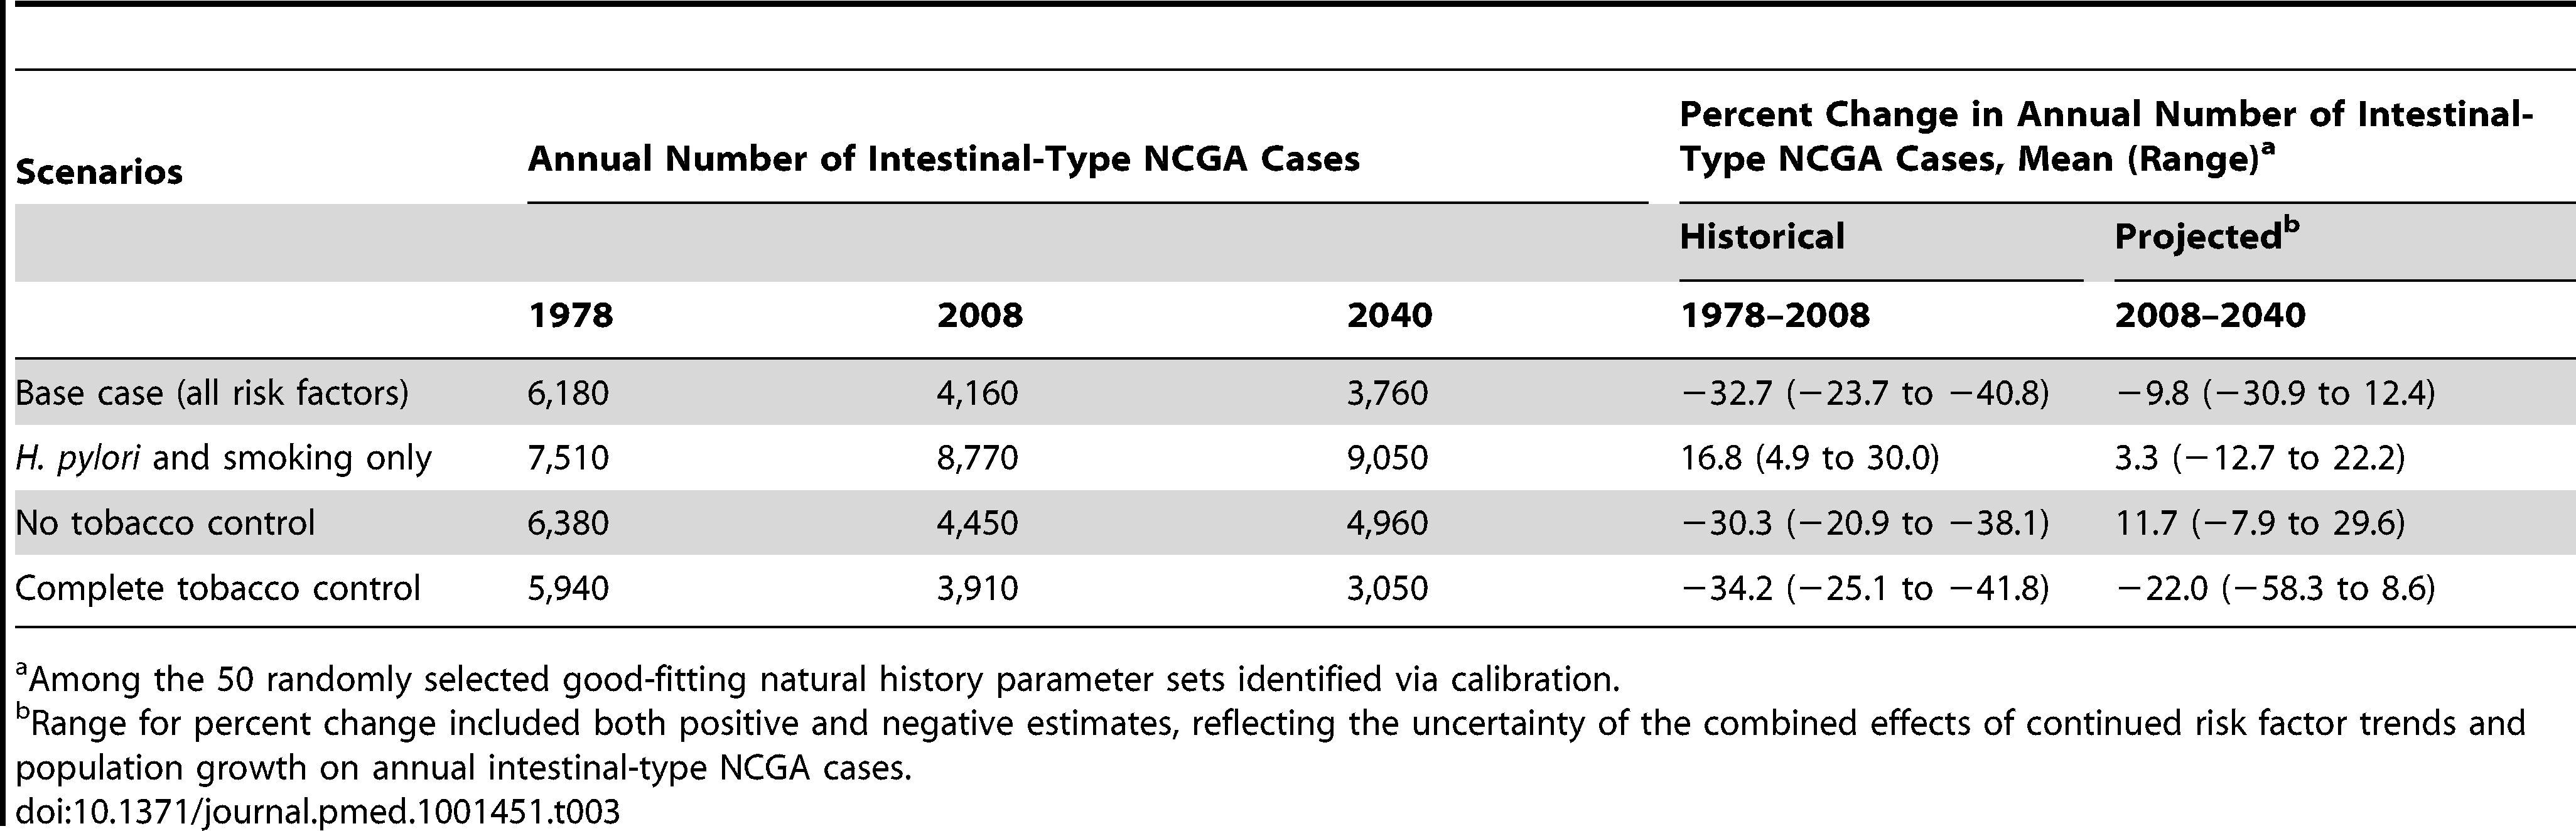 Modeled intestinal-type NCGA outcomes between 1978 and 2040: annual number of cancer cases and percent change in number of cases.